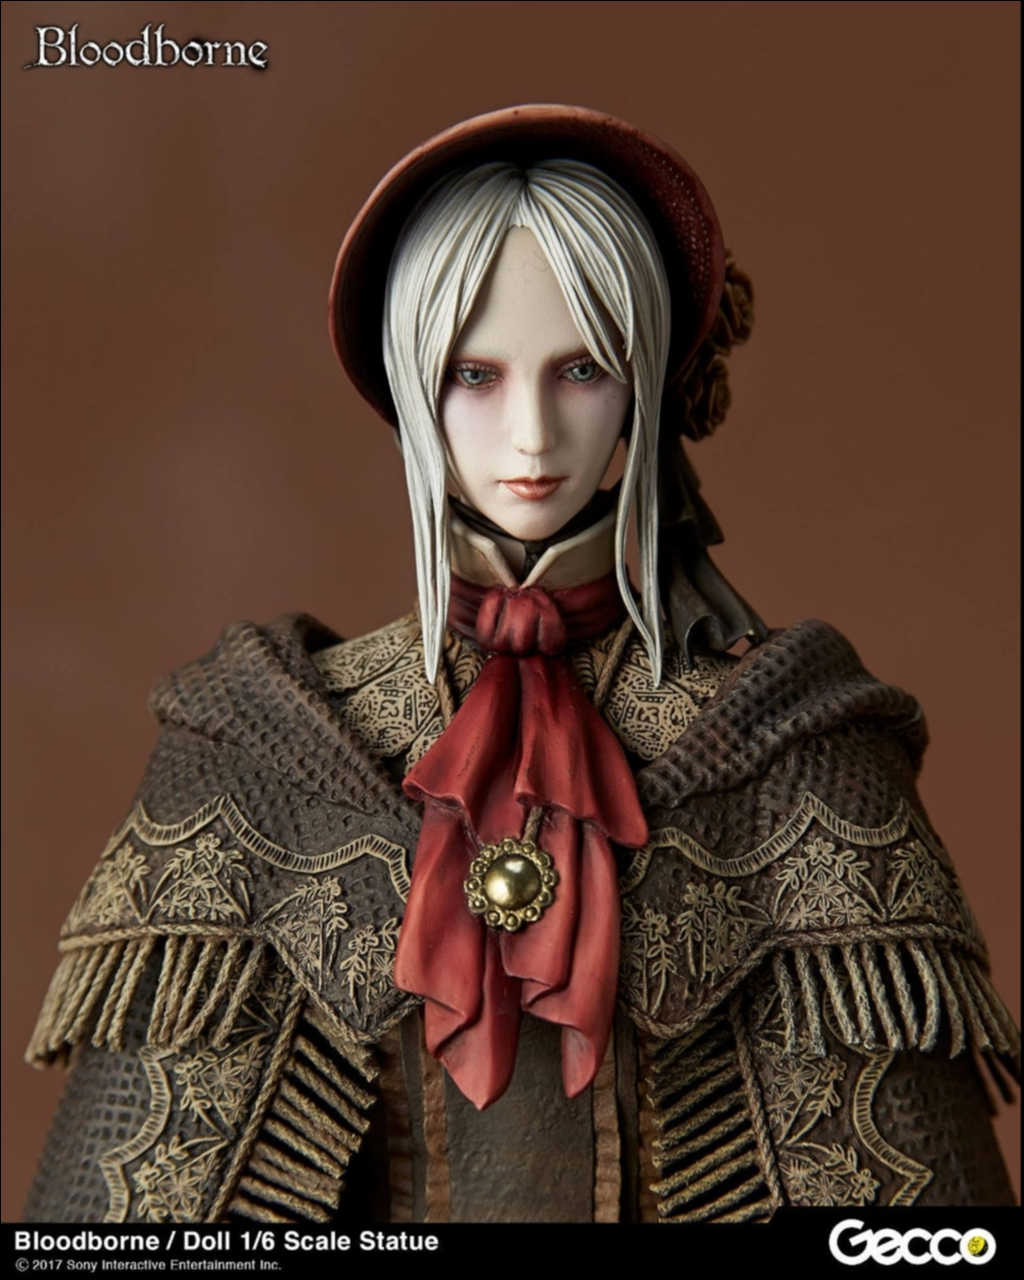 bloodborne-Doll-figure-statue-new-preorder-9-46-1499370767-58-1499371329.jpg